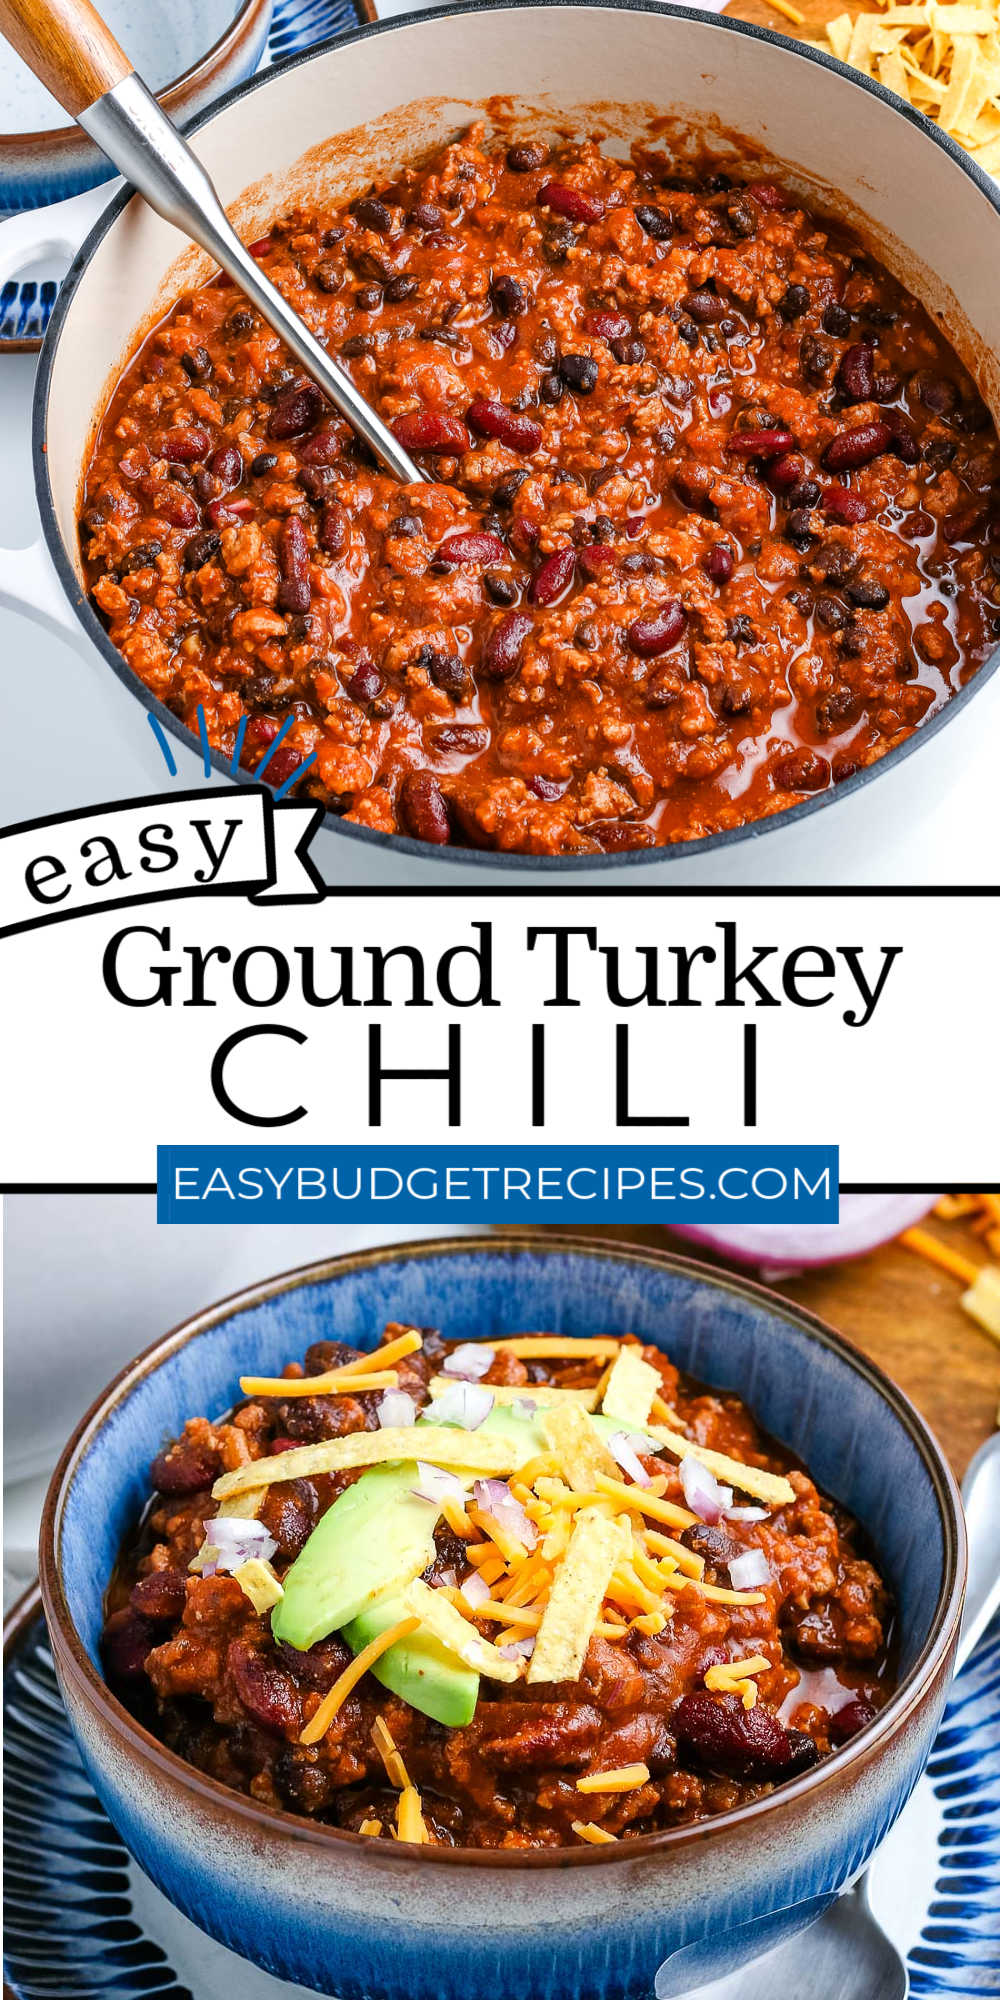 This Ground Turkey Chili is a simple and hearty recipe that packs many flavors and tastes even better the next day!  via @easybudgetrecipes